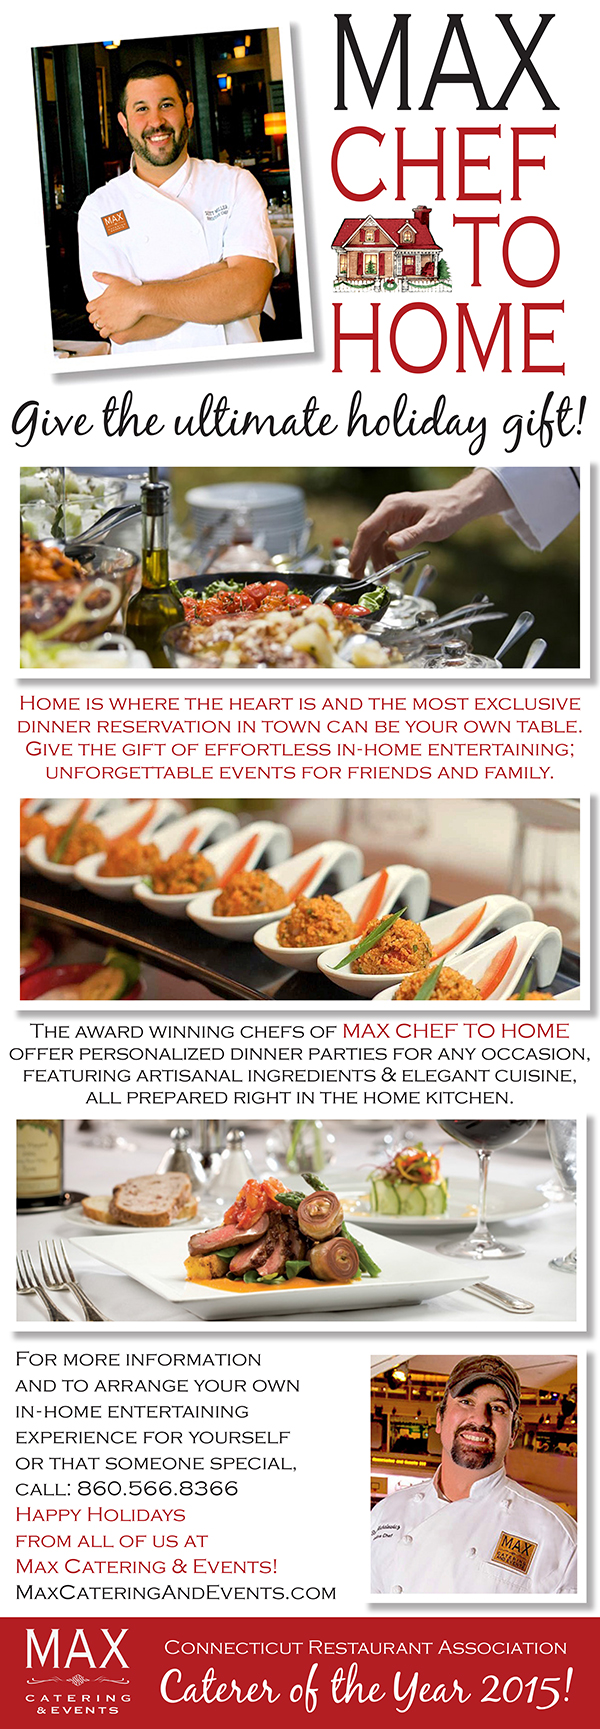 Max-Chef-To-Home-REVISED